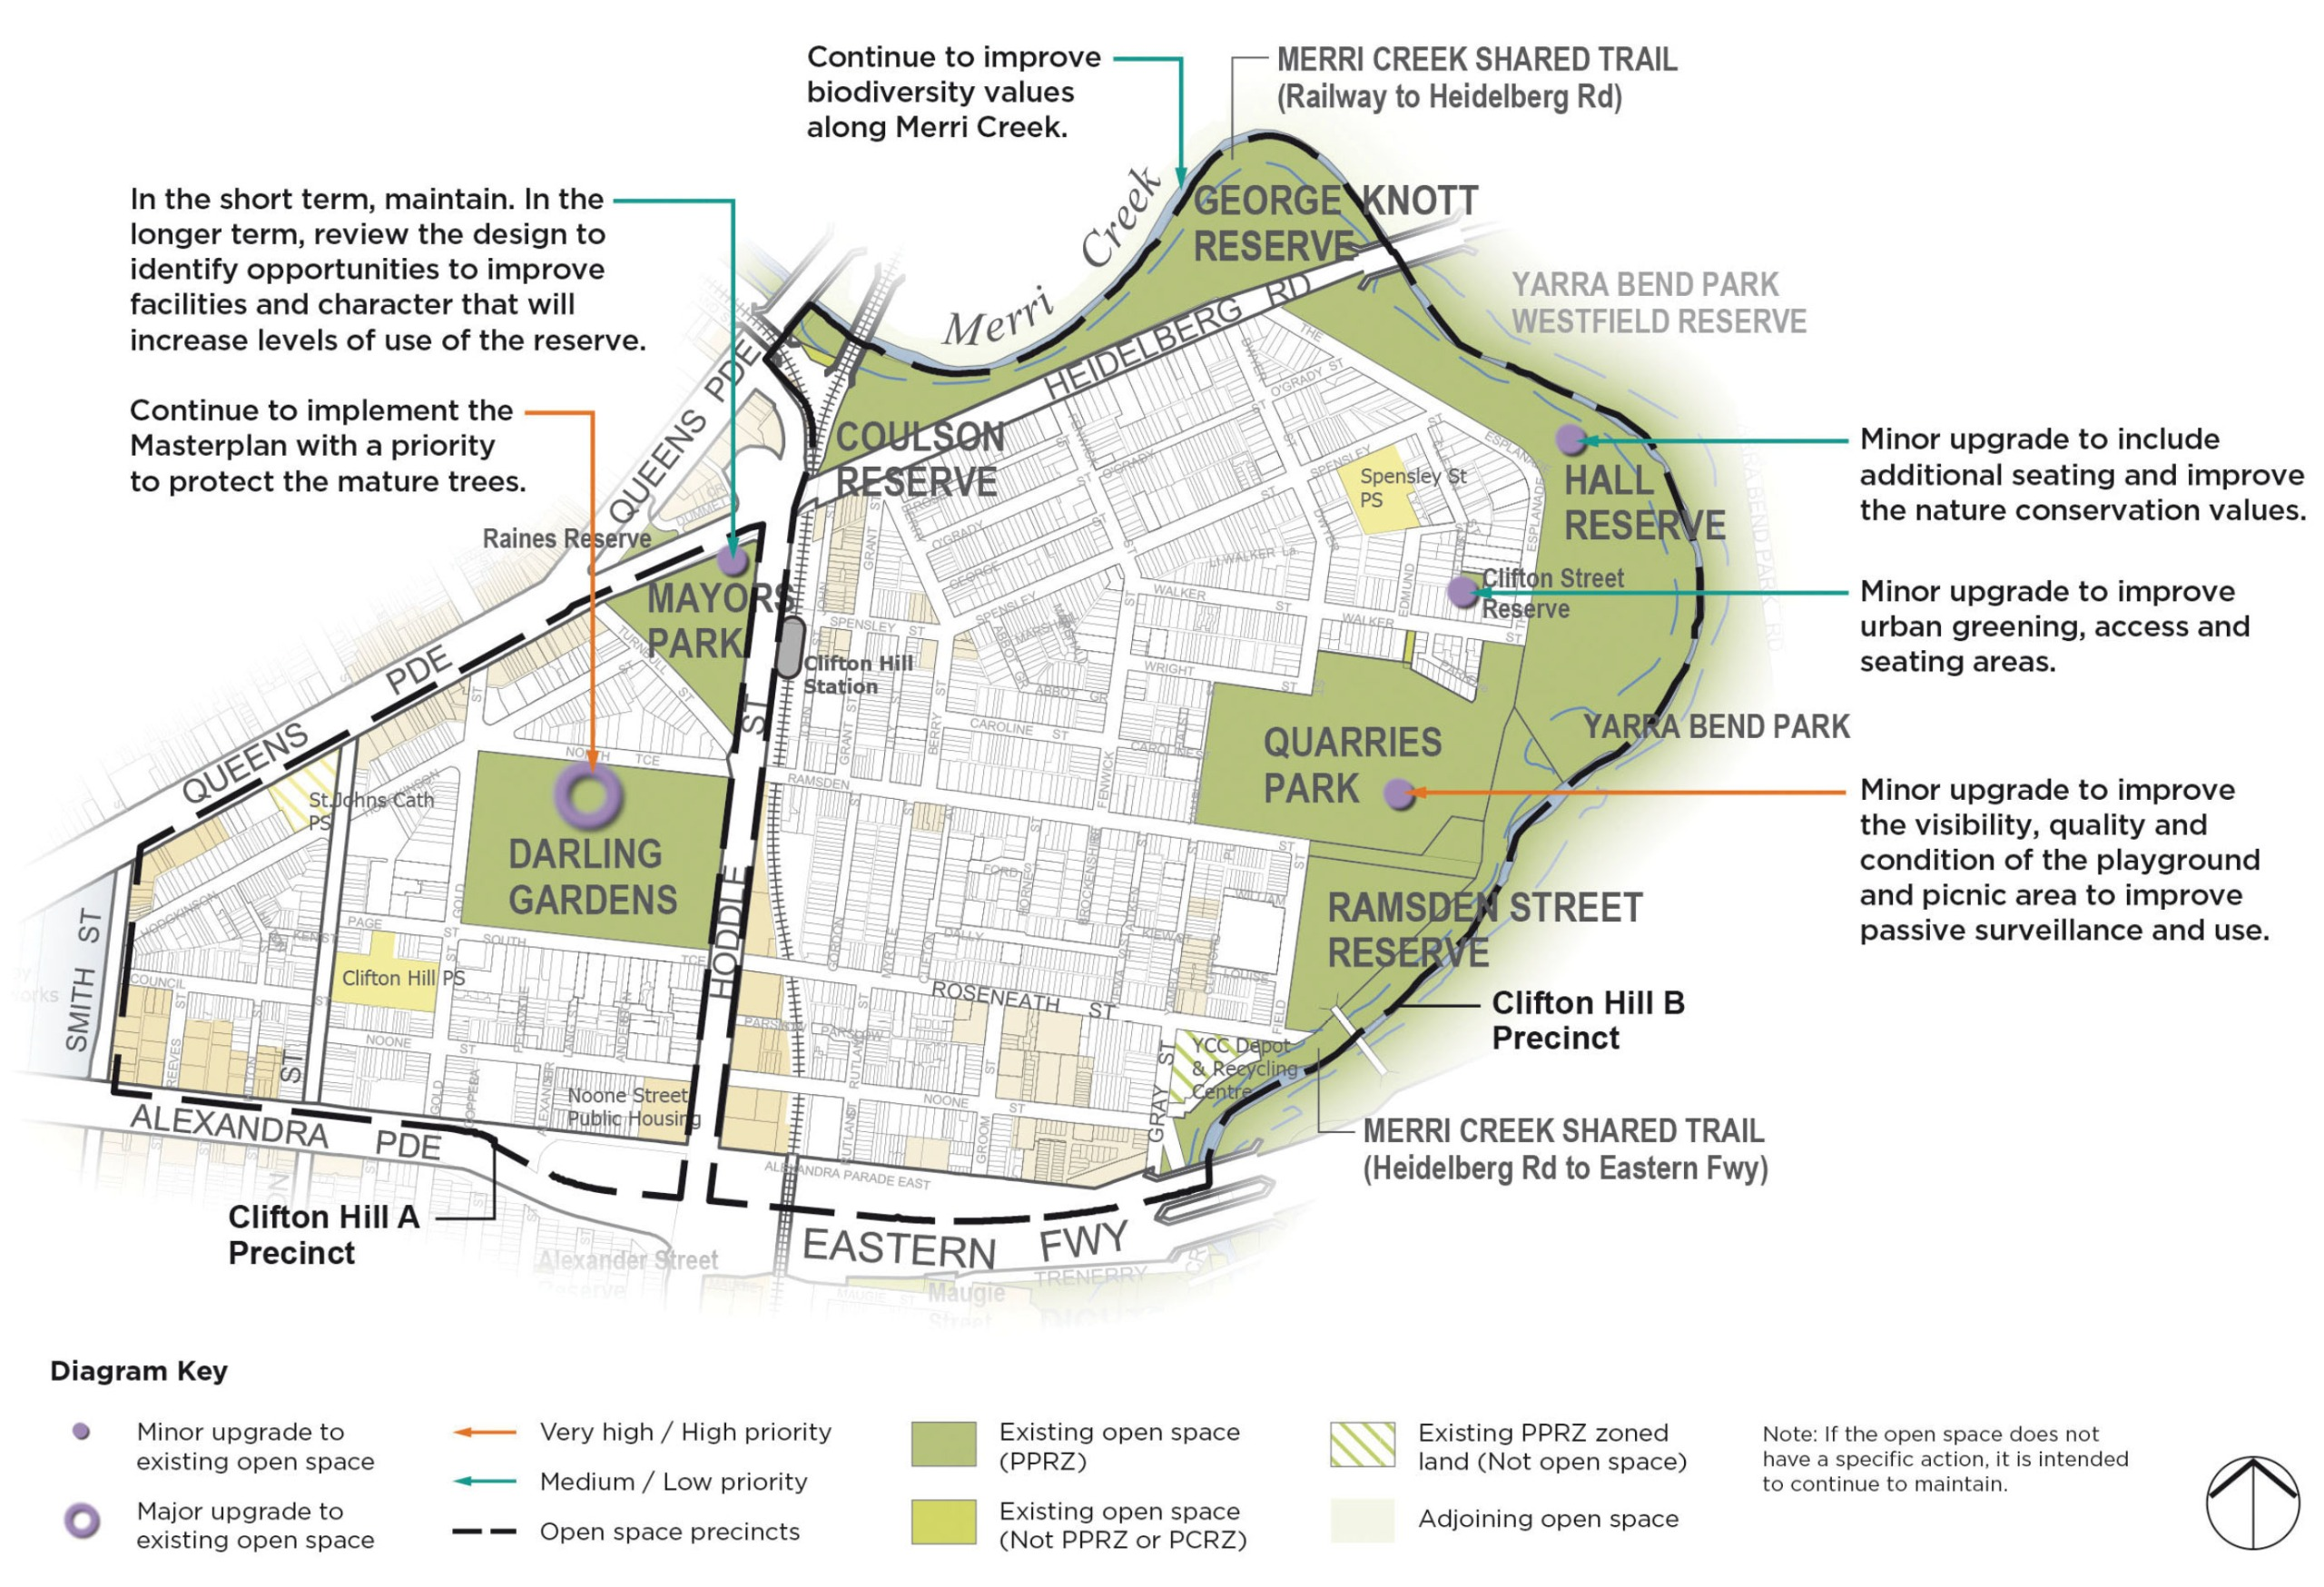 Recommendations for the Clifton Hill precinct